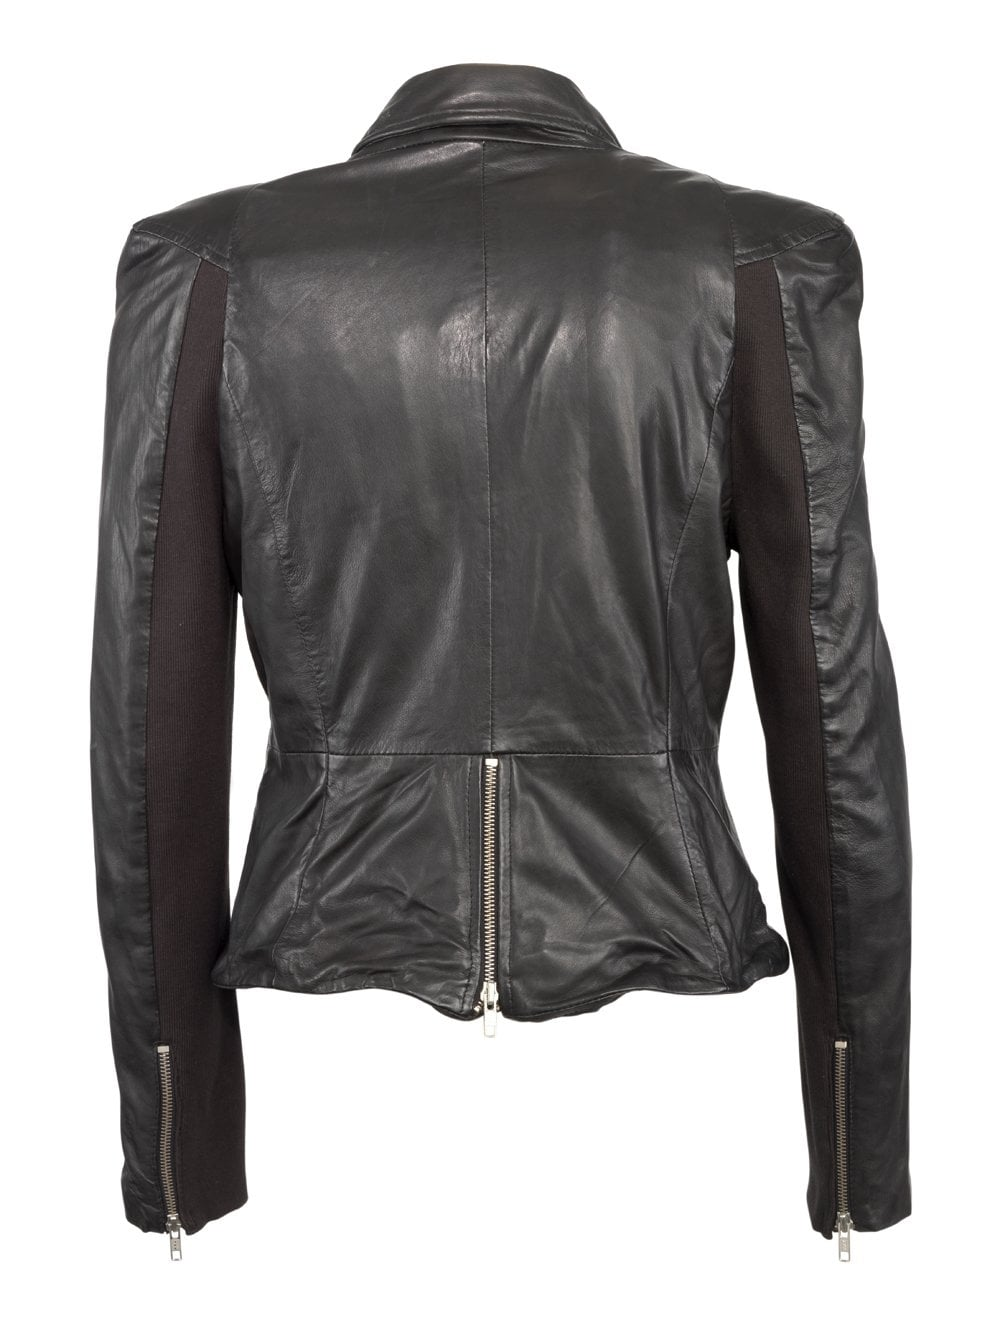 Mens dark brown leather jacket is available in High Quality Real leather, a comfy and heavy-duty material. It has a viscose lining inside, erect collar and zipper closure to boost the attire's style.5/5(2).